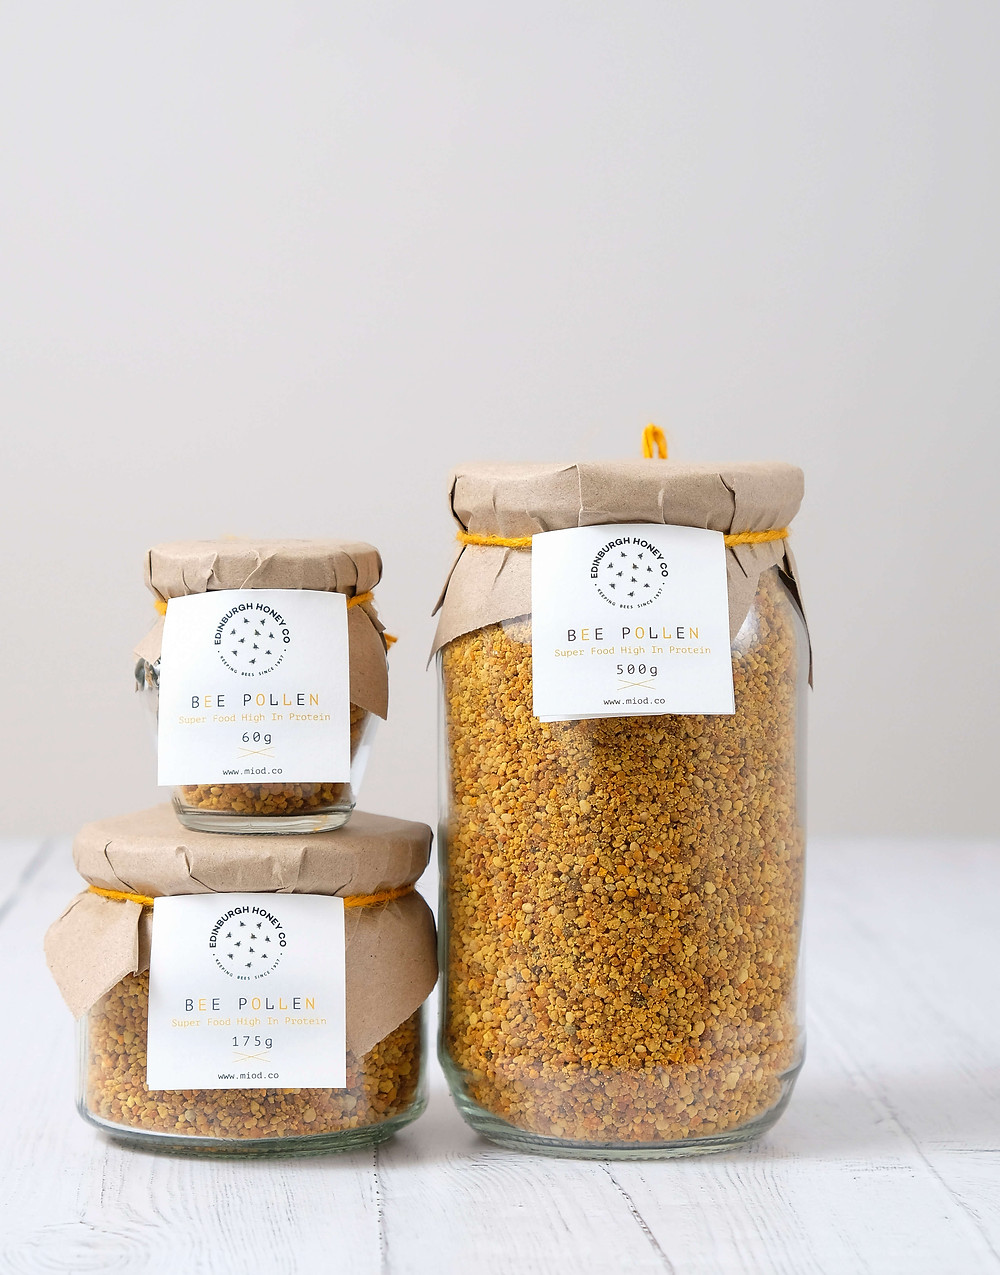 Bee Pollen - high protein, nutrient-rich for natural allergy relief.